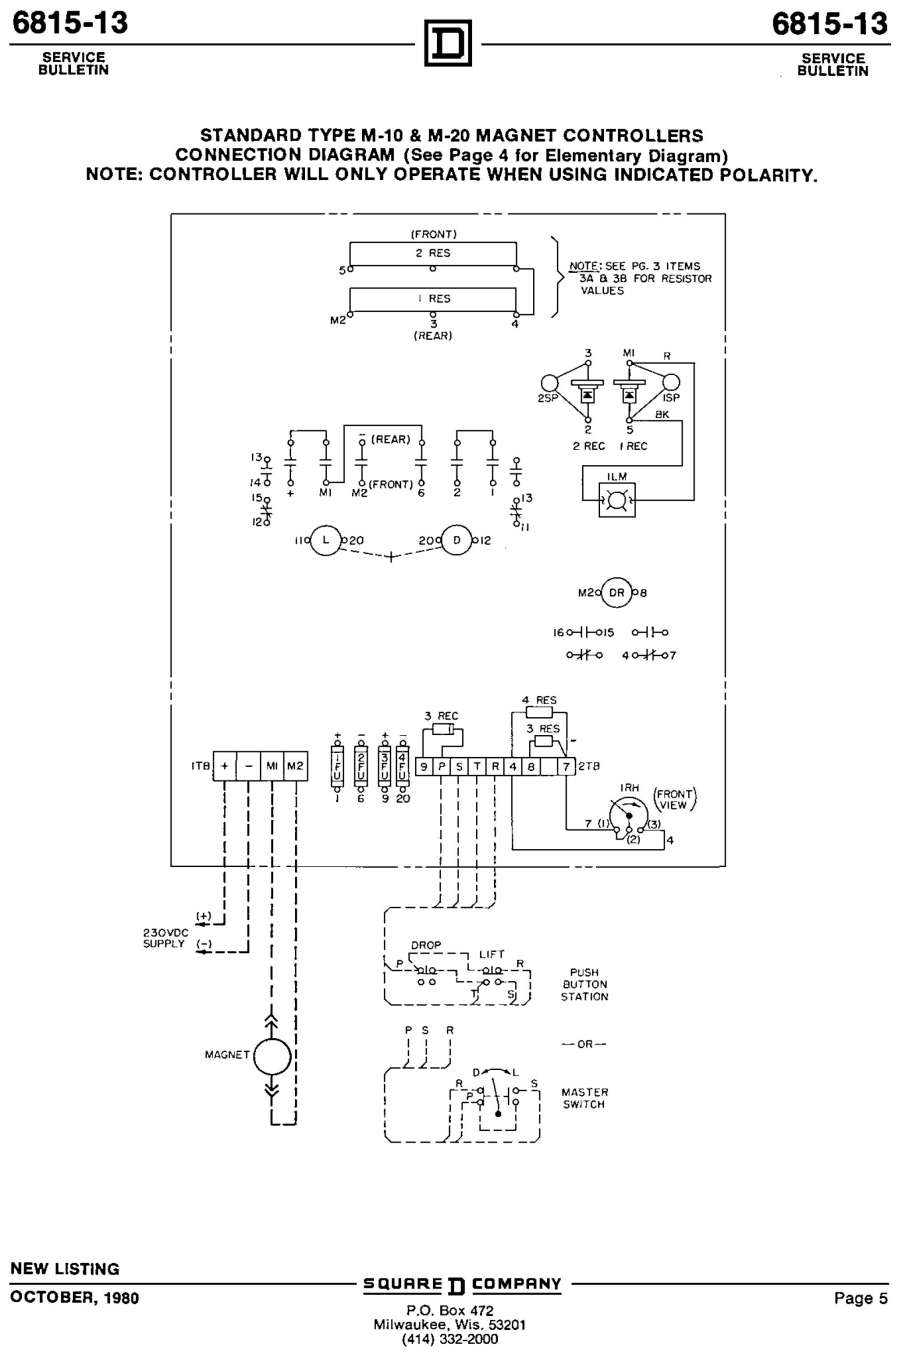 Pole Mounted Controller Wiring Diagram Computer